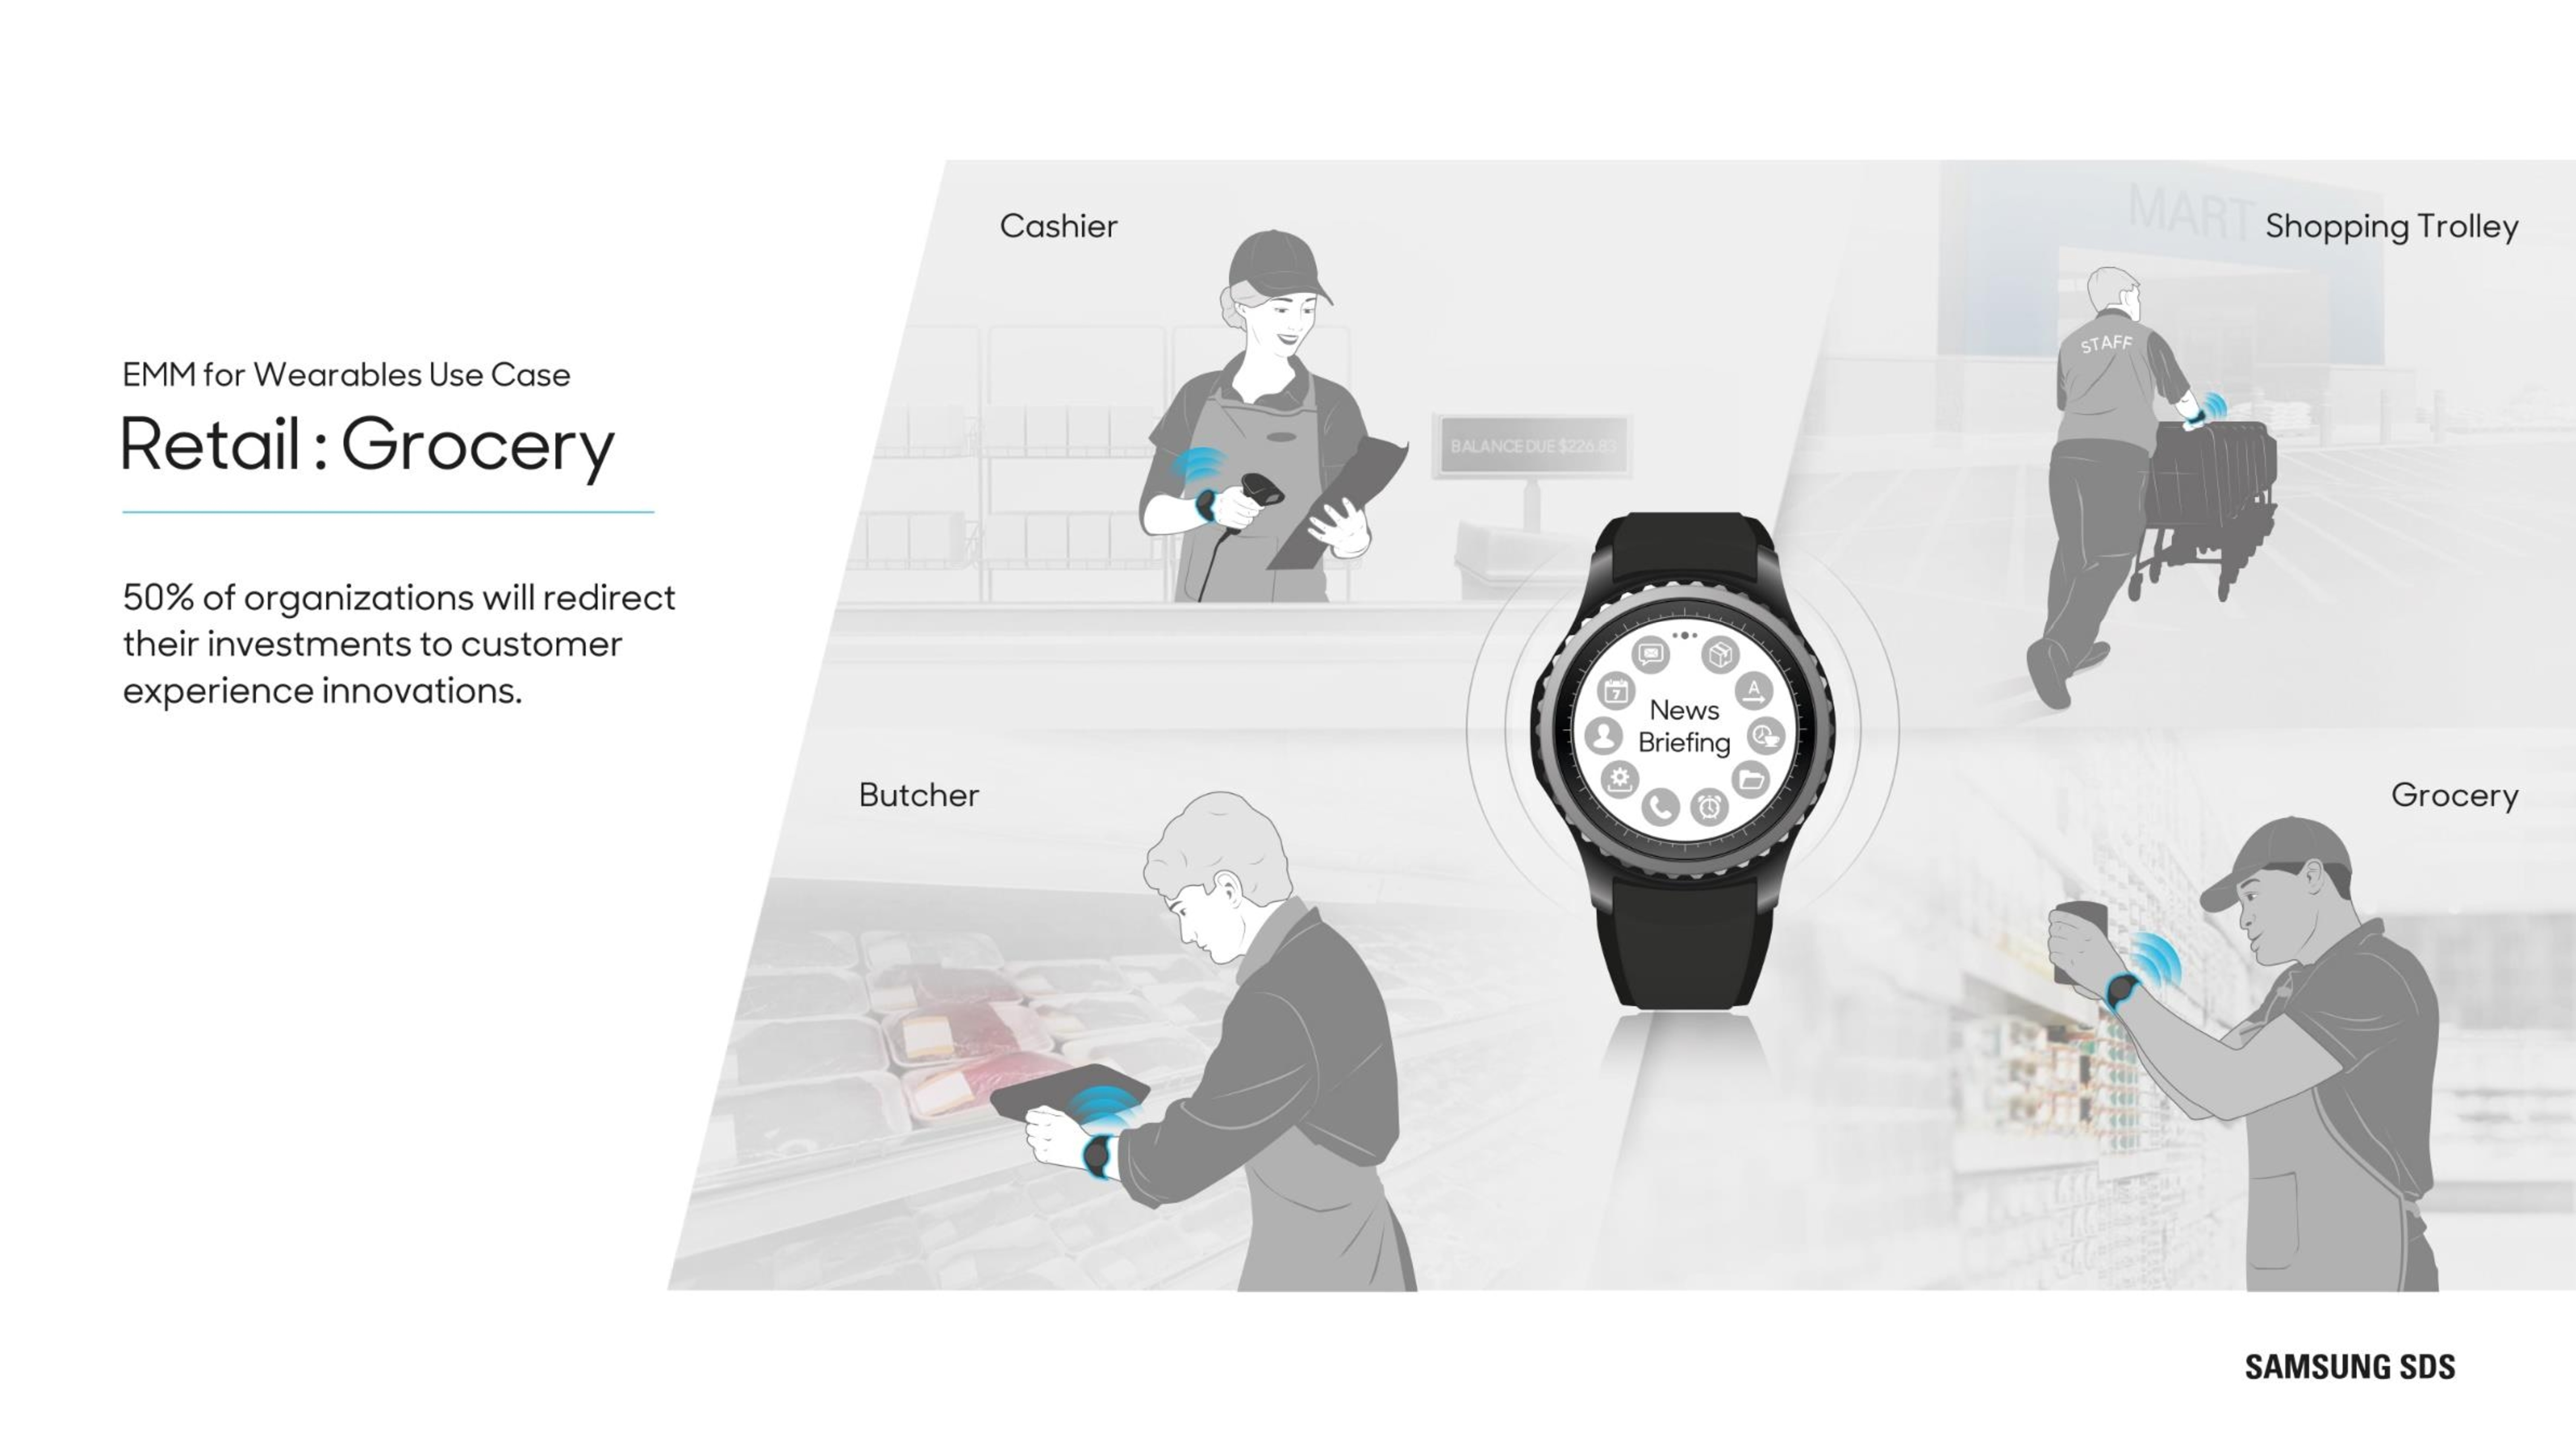 Wearables in Retail 50% of organizations will redirect their investments to customer experience innovations.